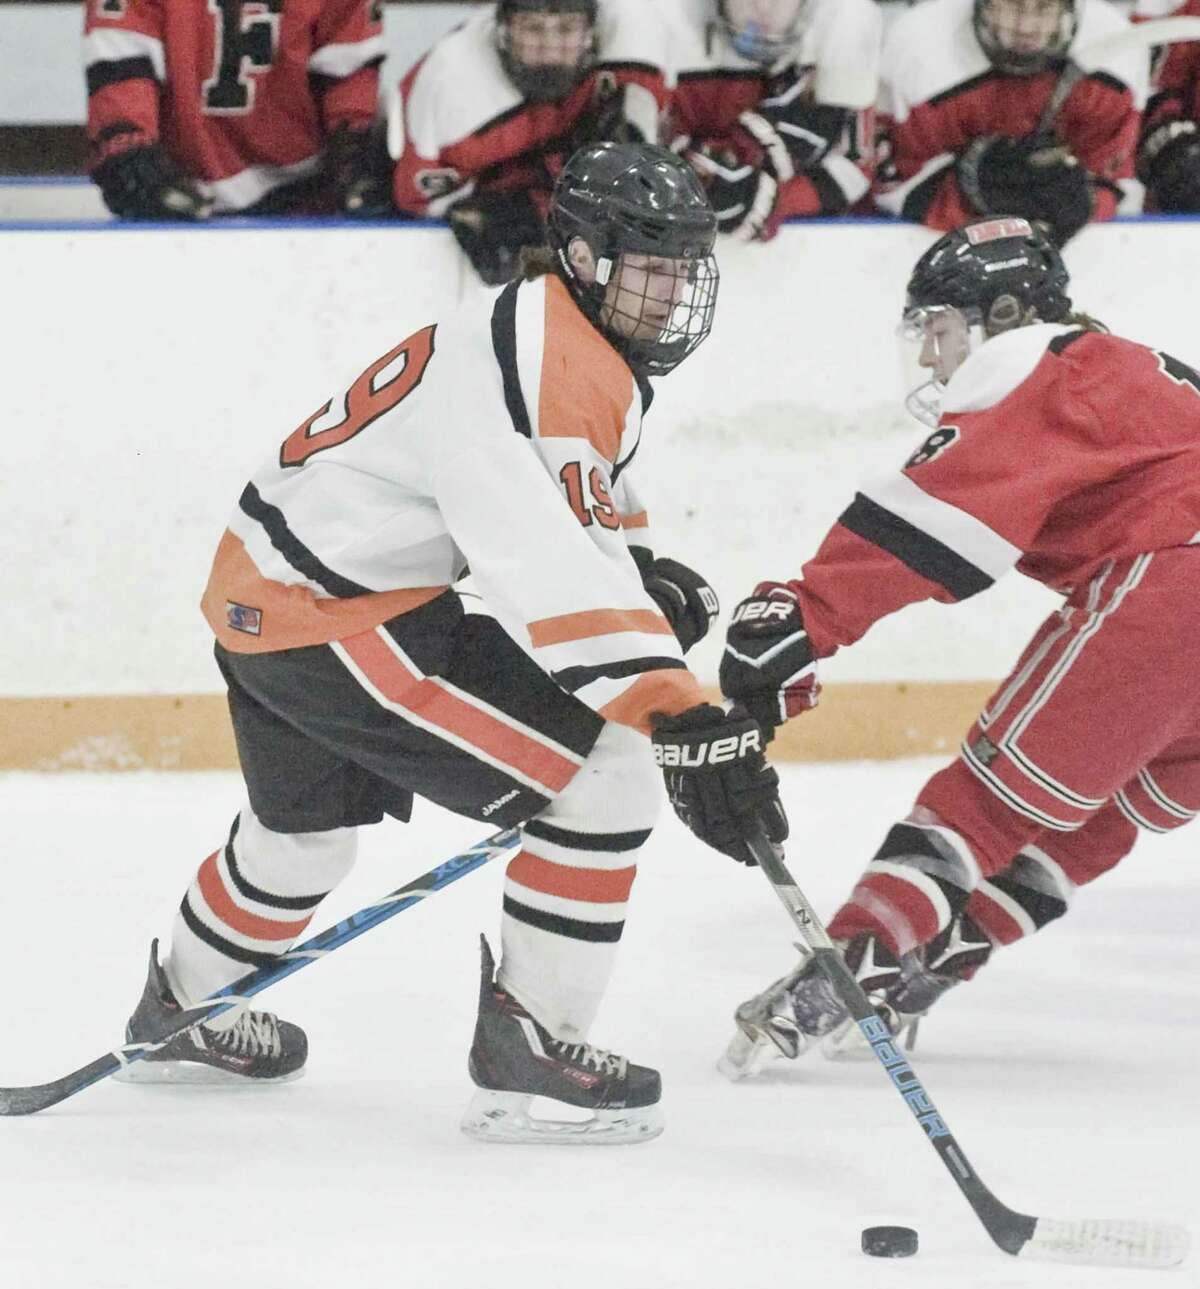 Ridgefield High School's Braeden McSpedon tries to get control of the puck in the first round of the Division-1 game against Fairfield Warde/Ludlowe, played at Ridgefield. Friday, March 9, 2018